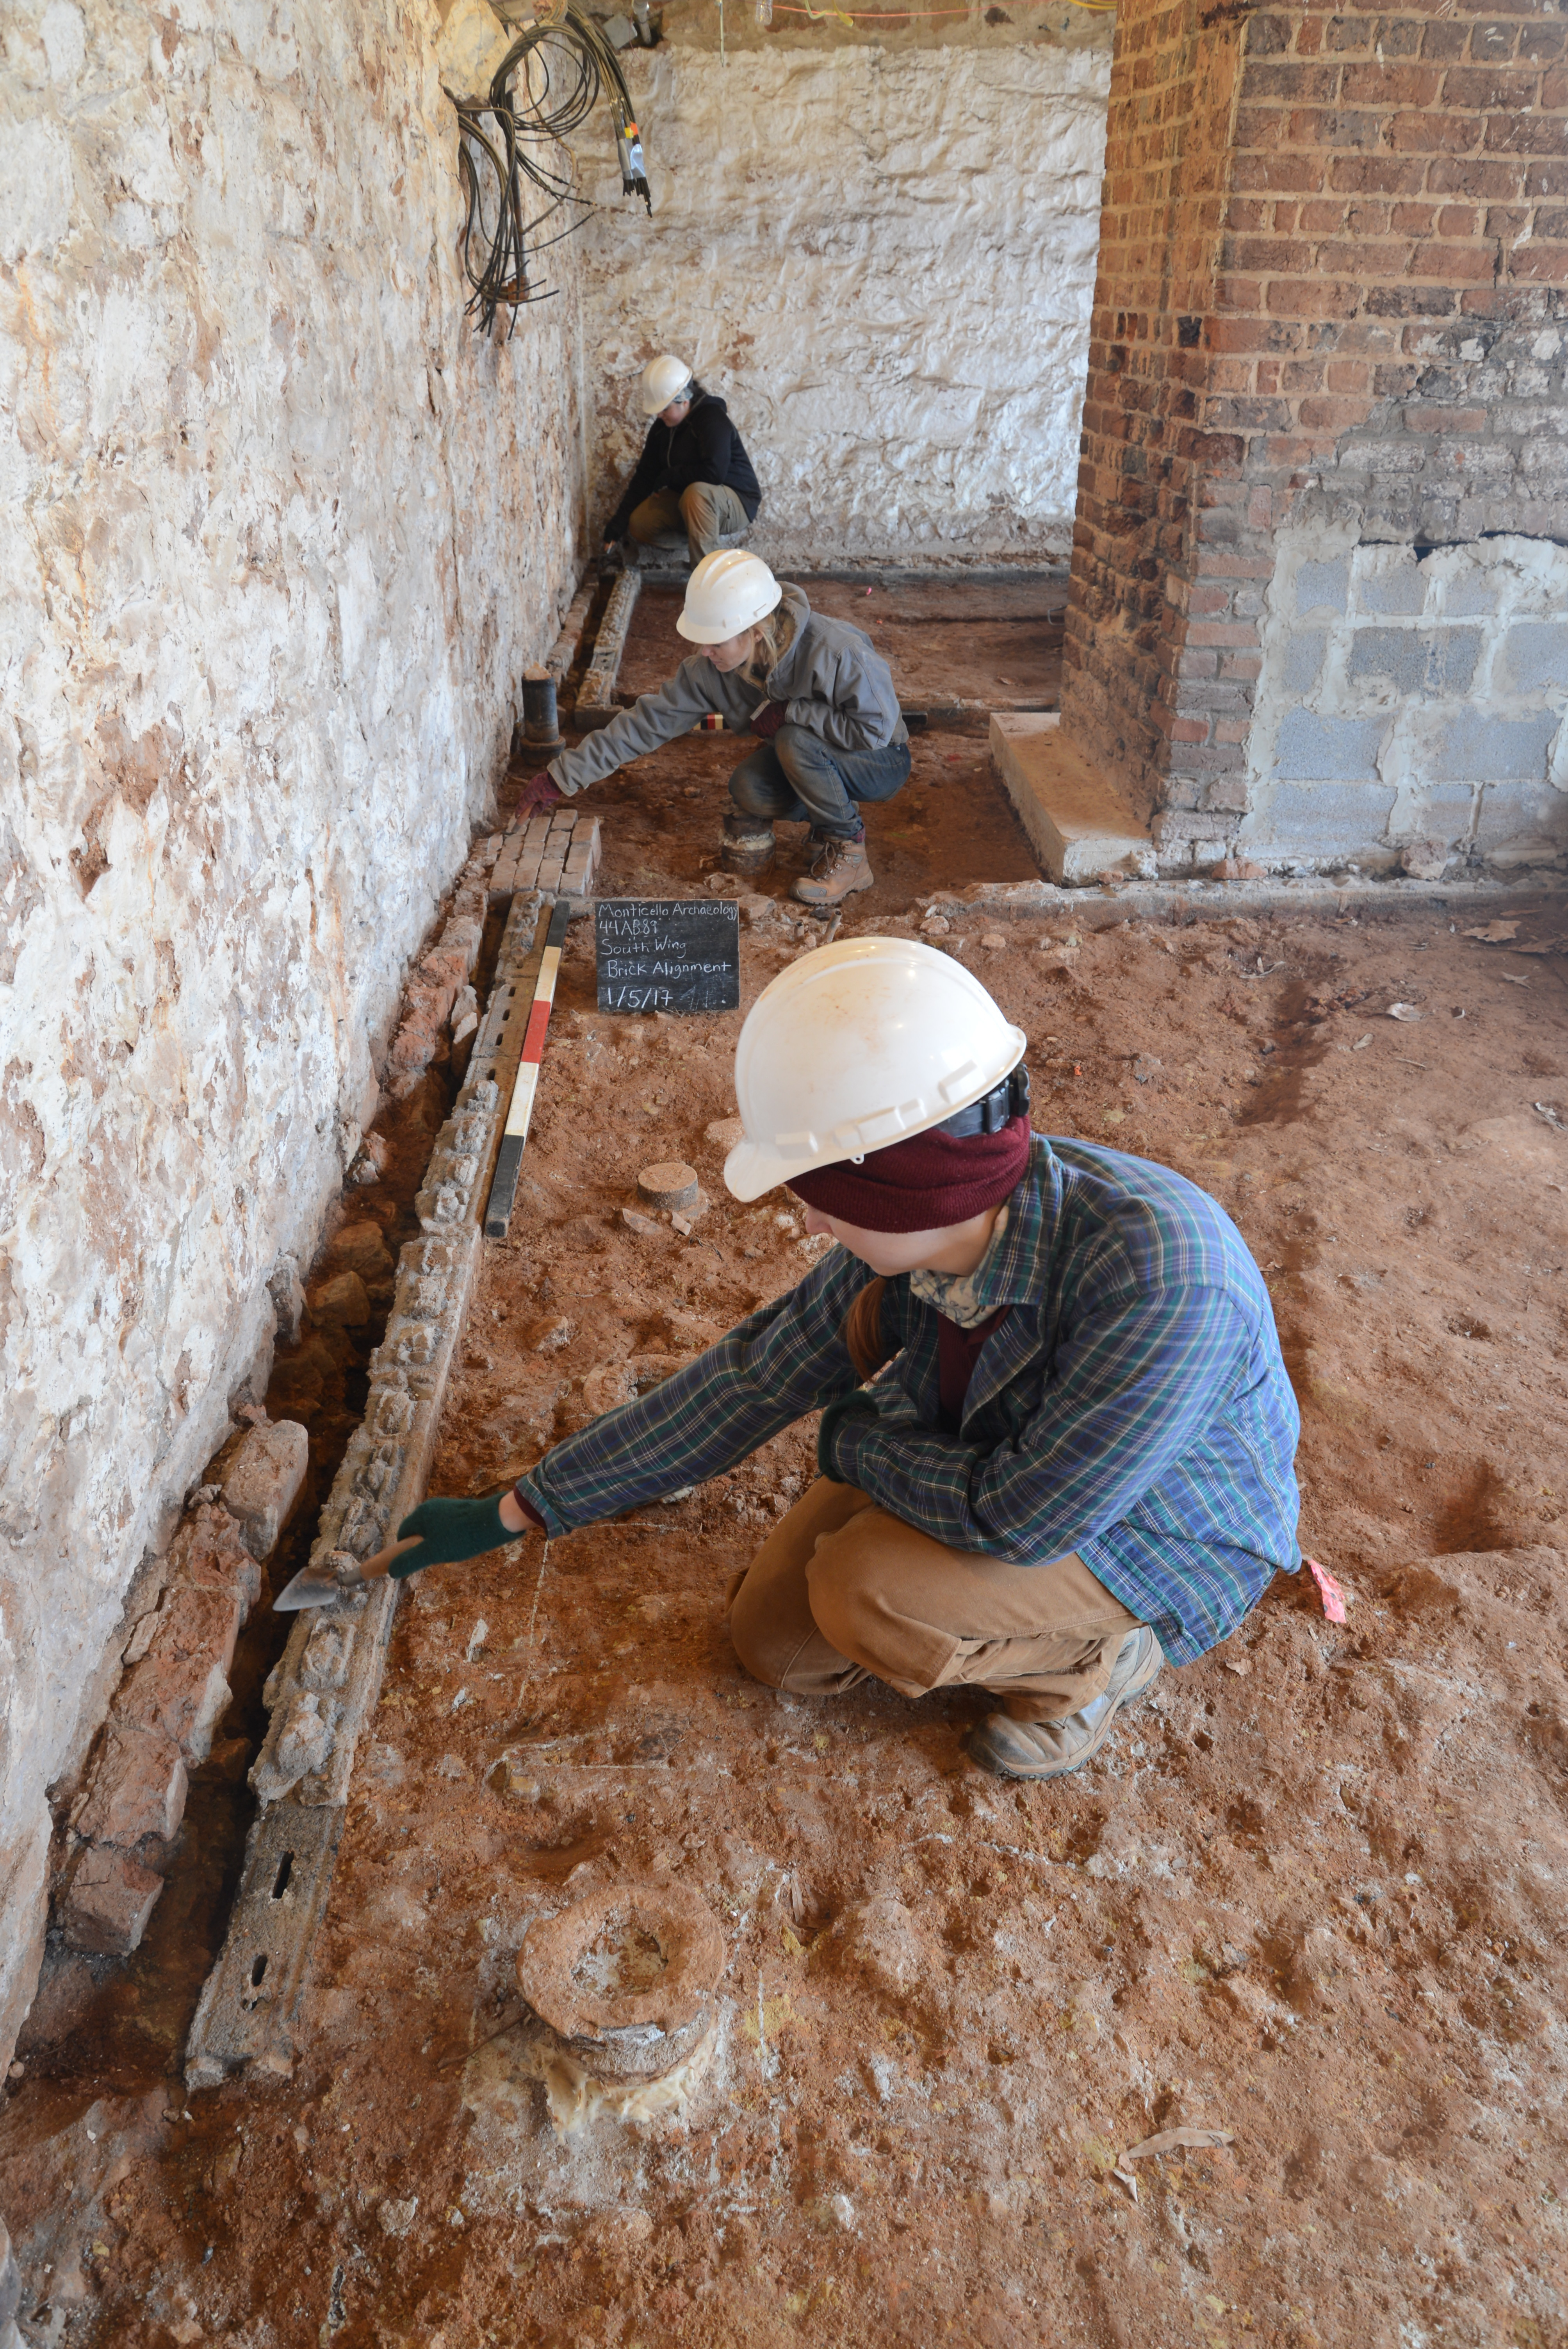 Monticello Restoration Project Puts An Increased Focus On Jefferson's Slaves